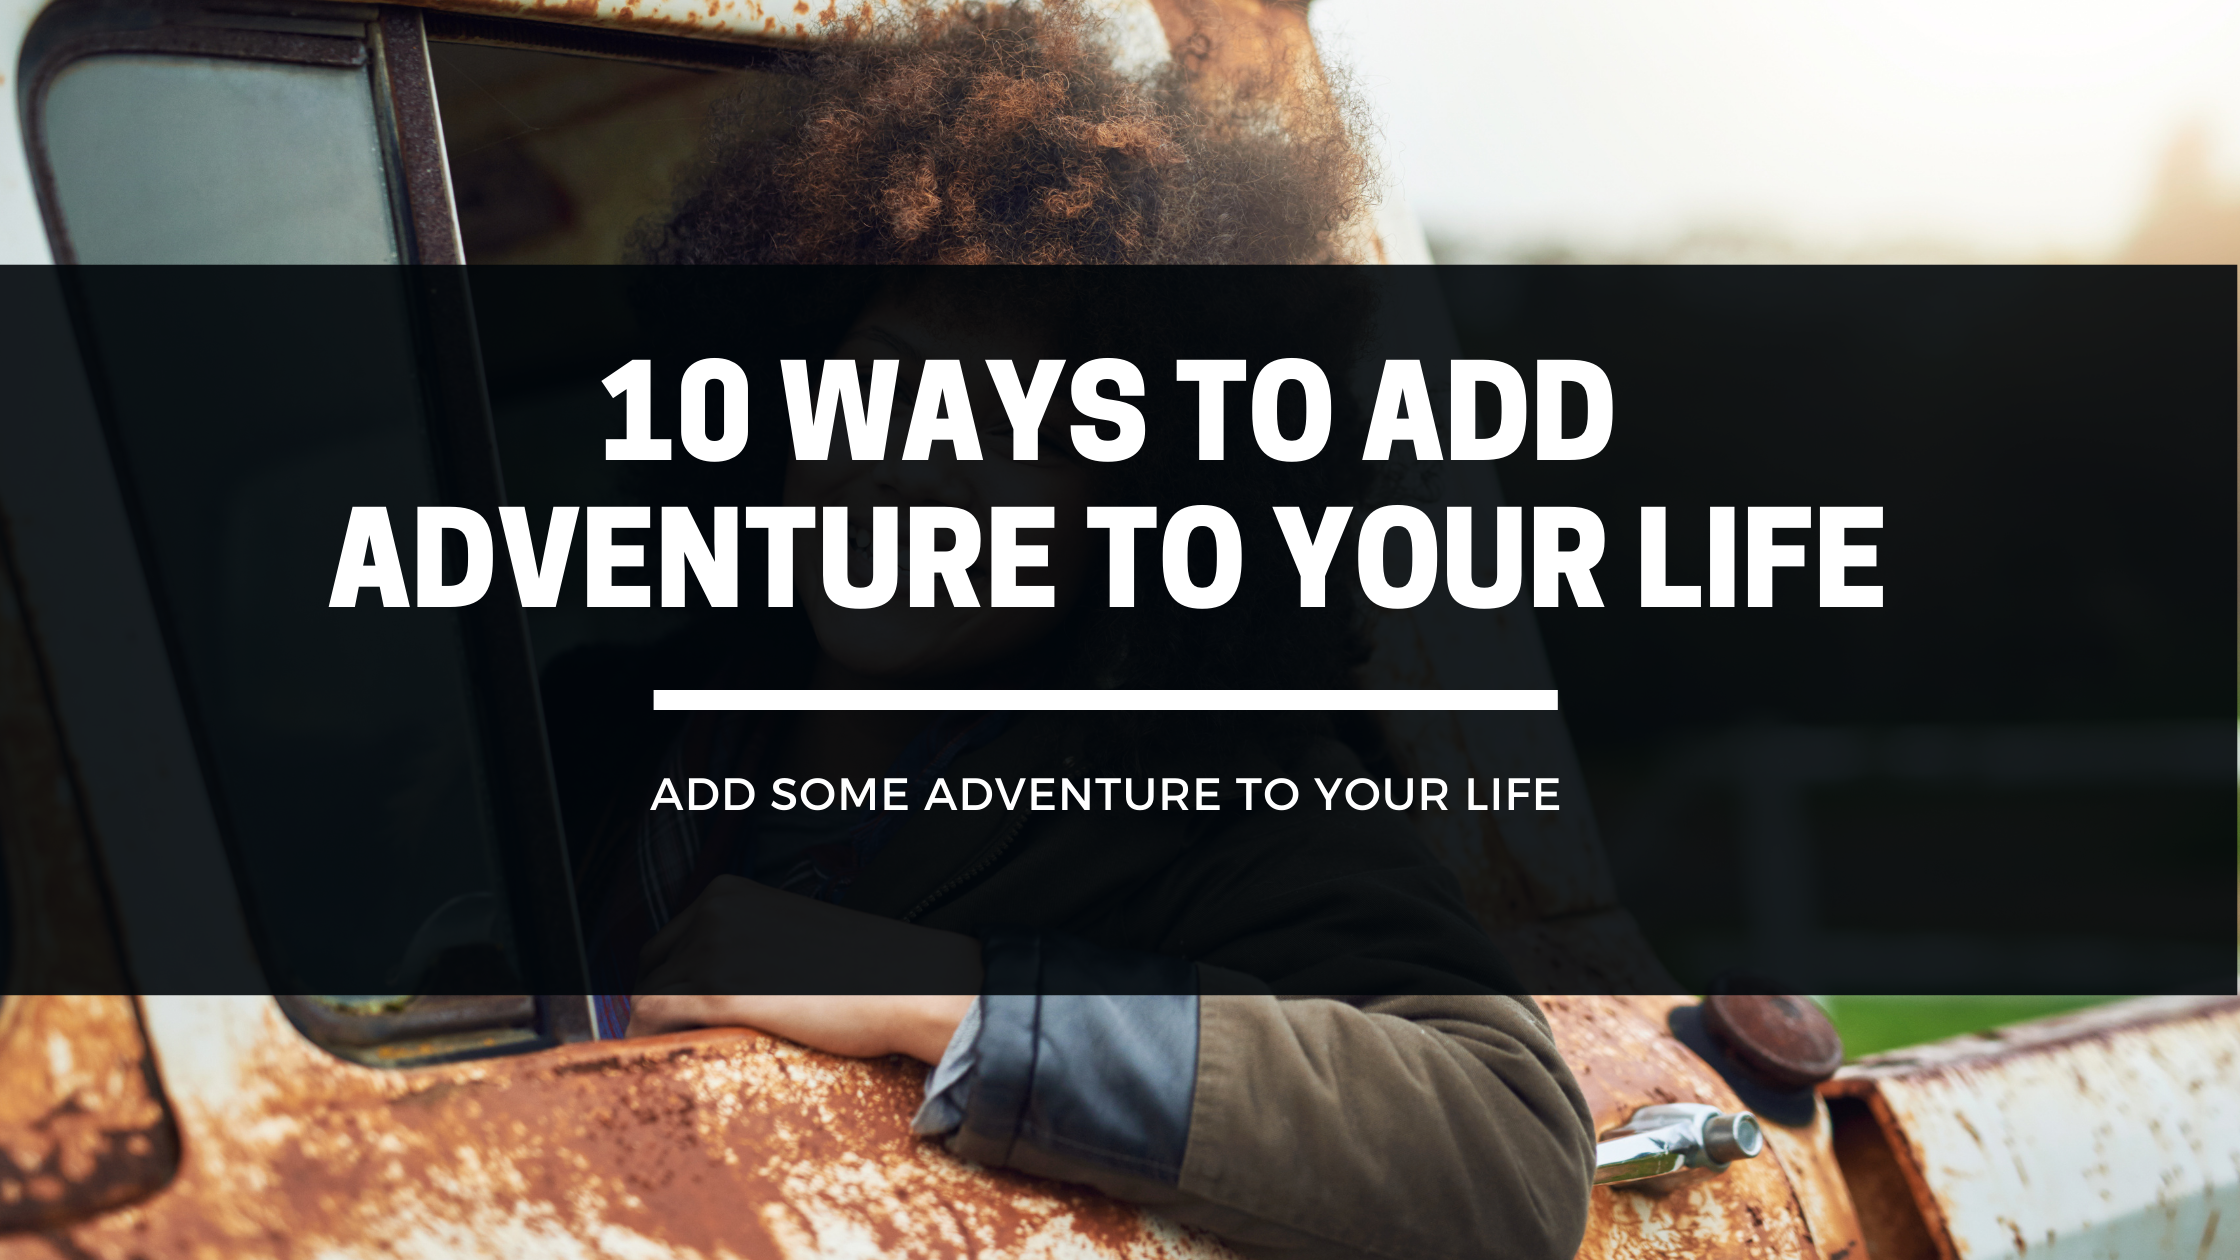 10 Ways To Add Adventure To Your Life